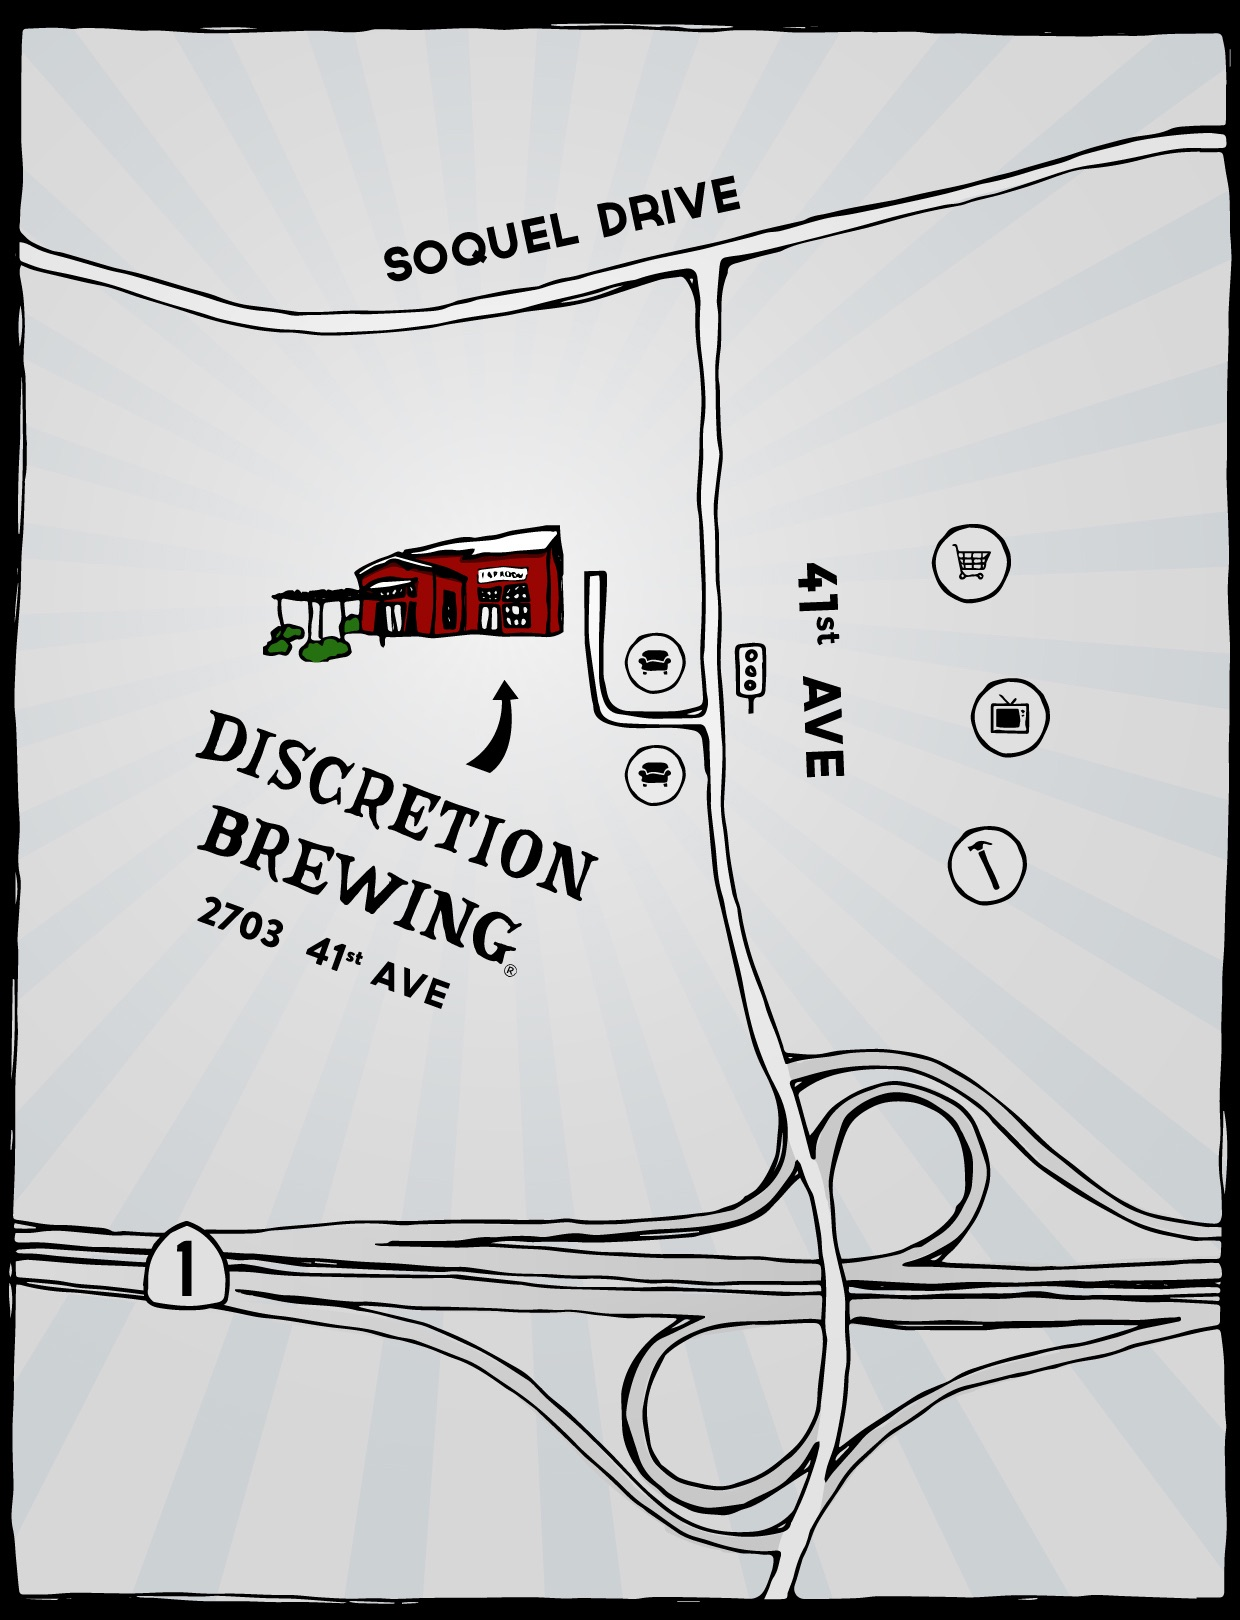 Illustrated map of of Discretion Brewing locaiton